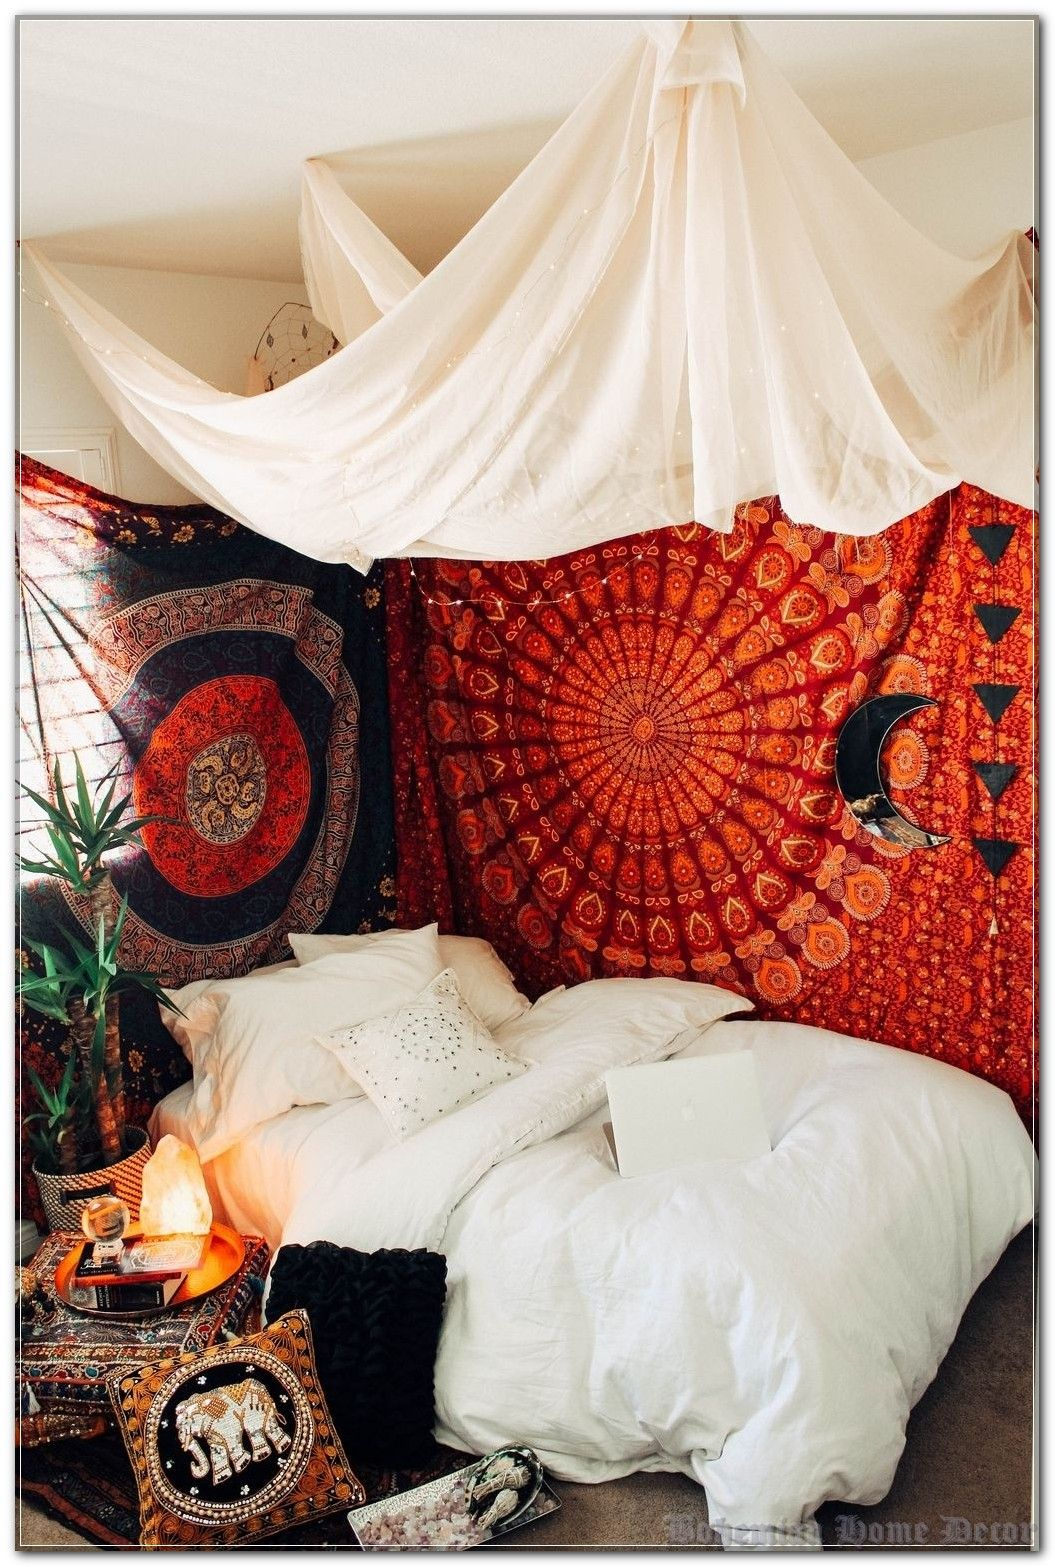 10 Ideas About Bohemian Home Decor That Really Work